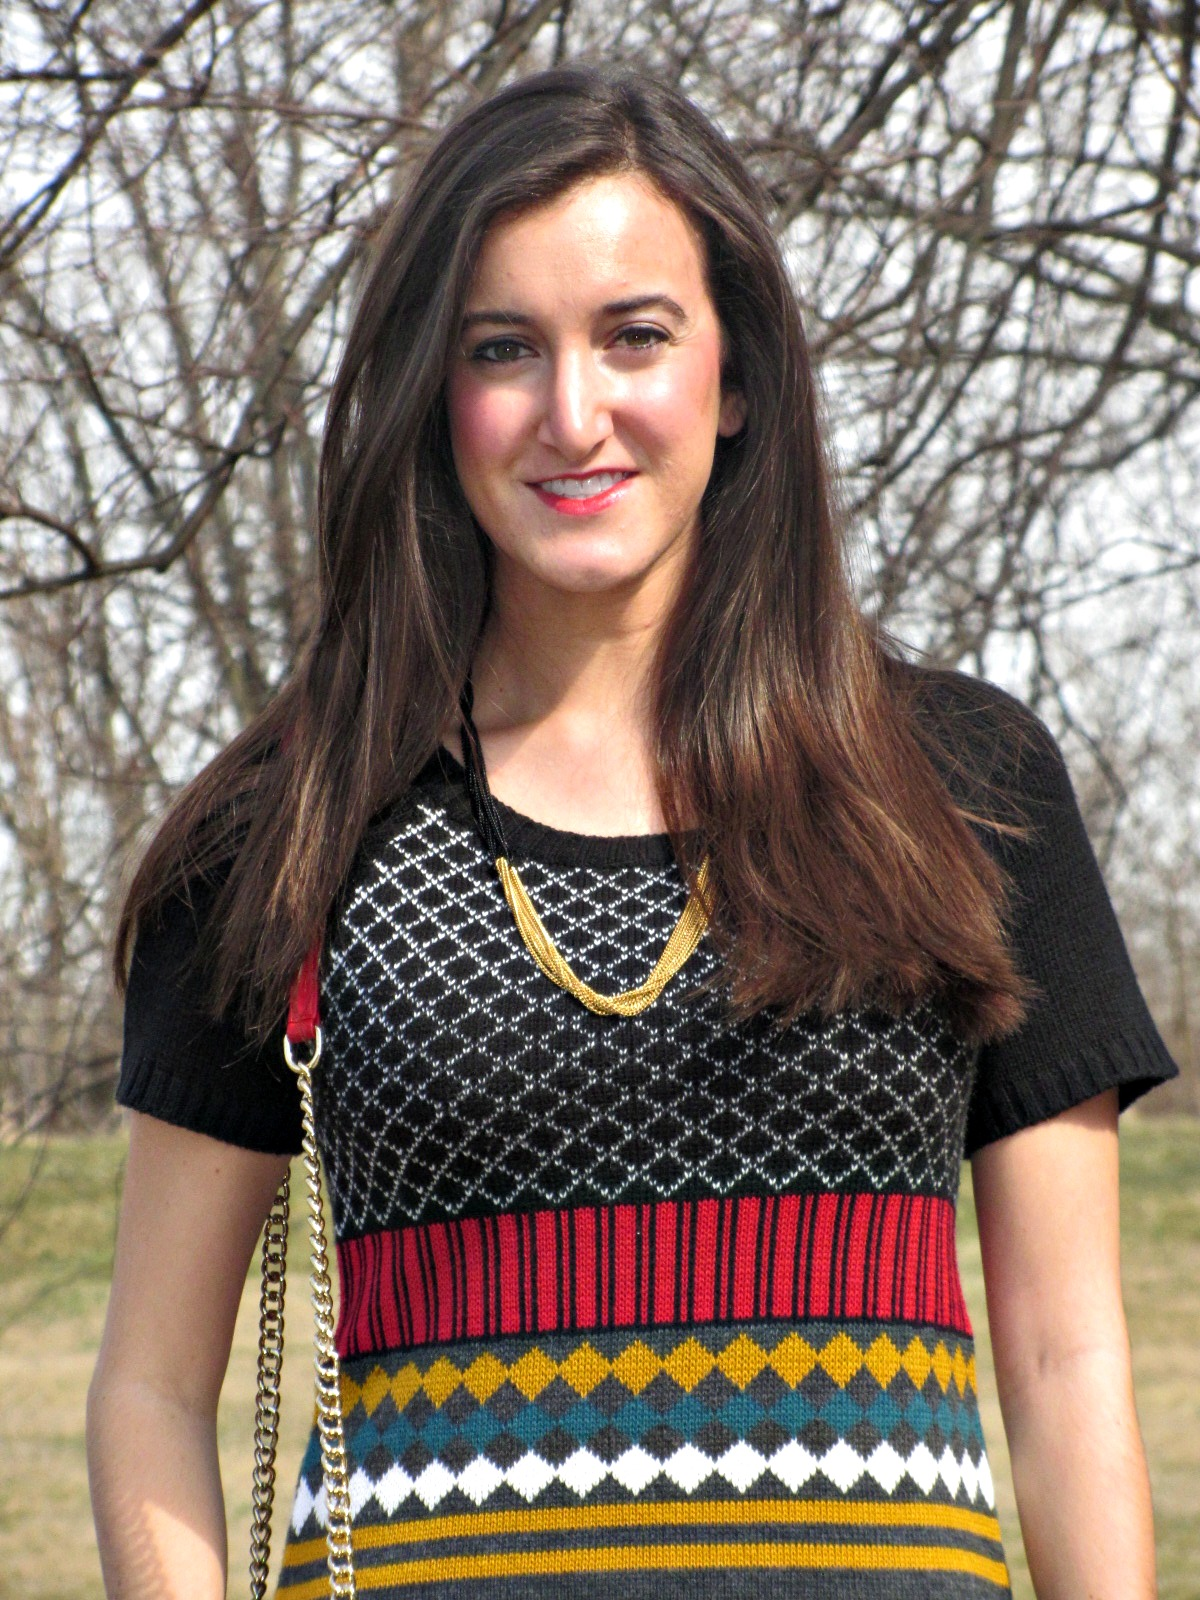 Red Yellow Black Green Colorful Knit Dress